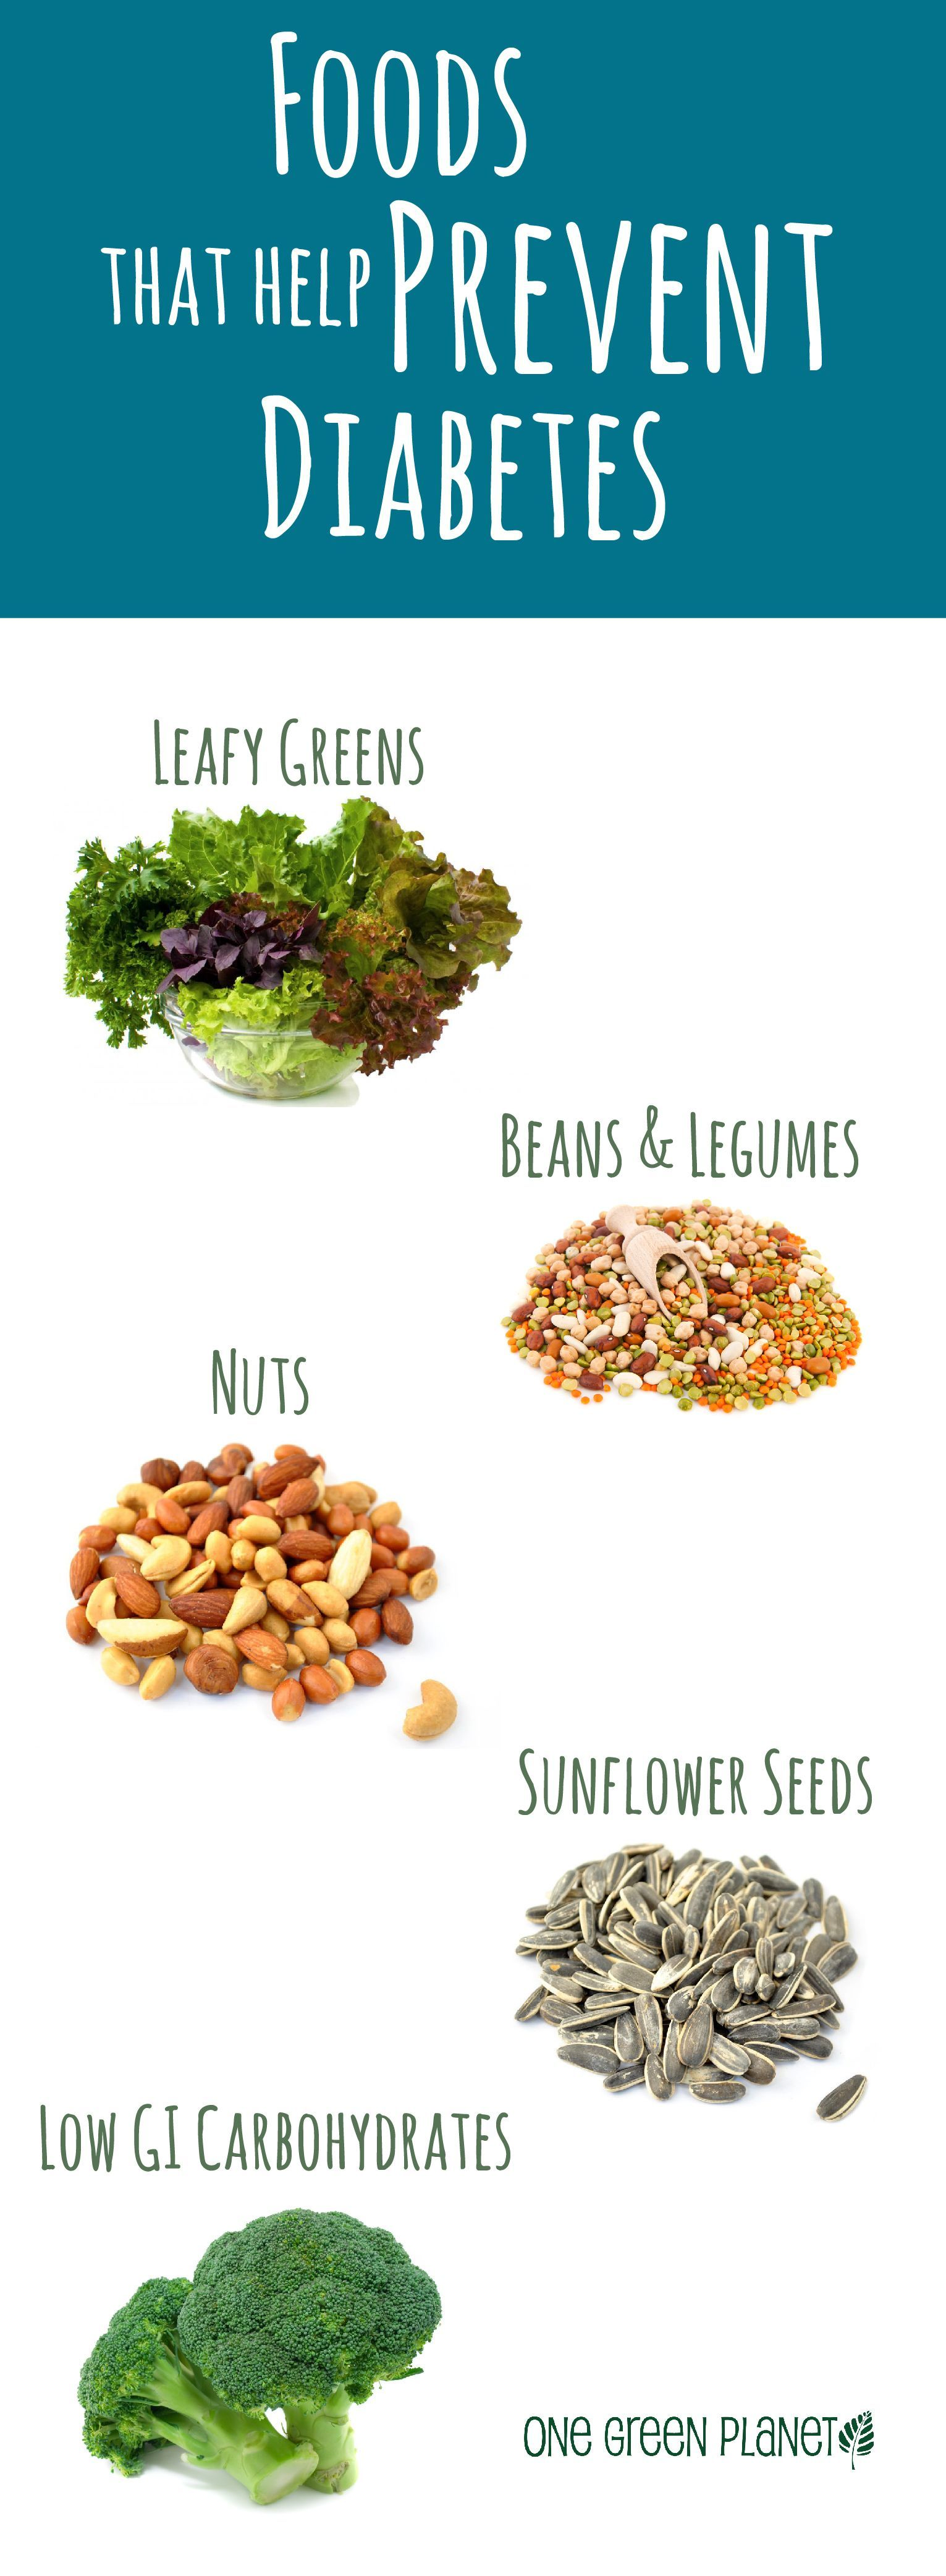 5 Foods That Can Help In Diabetic Weight Gain 5 Foods That Can Help In Diabetic Weight Gain new pictures